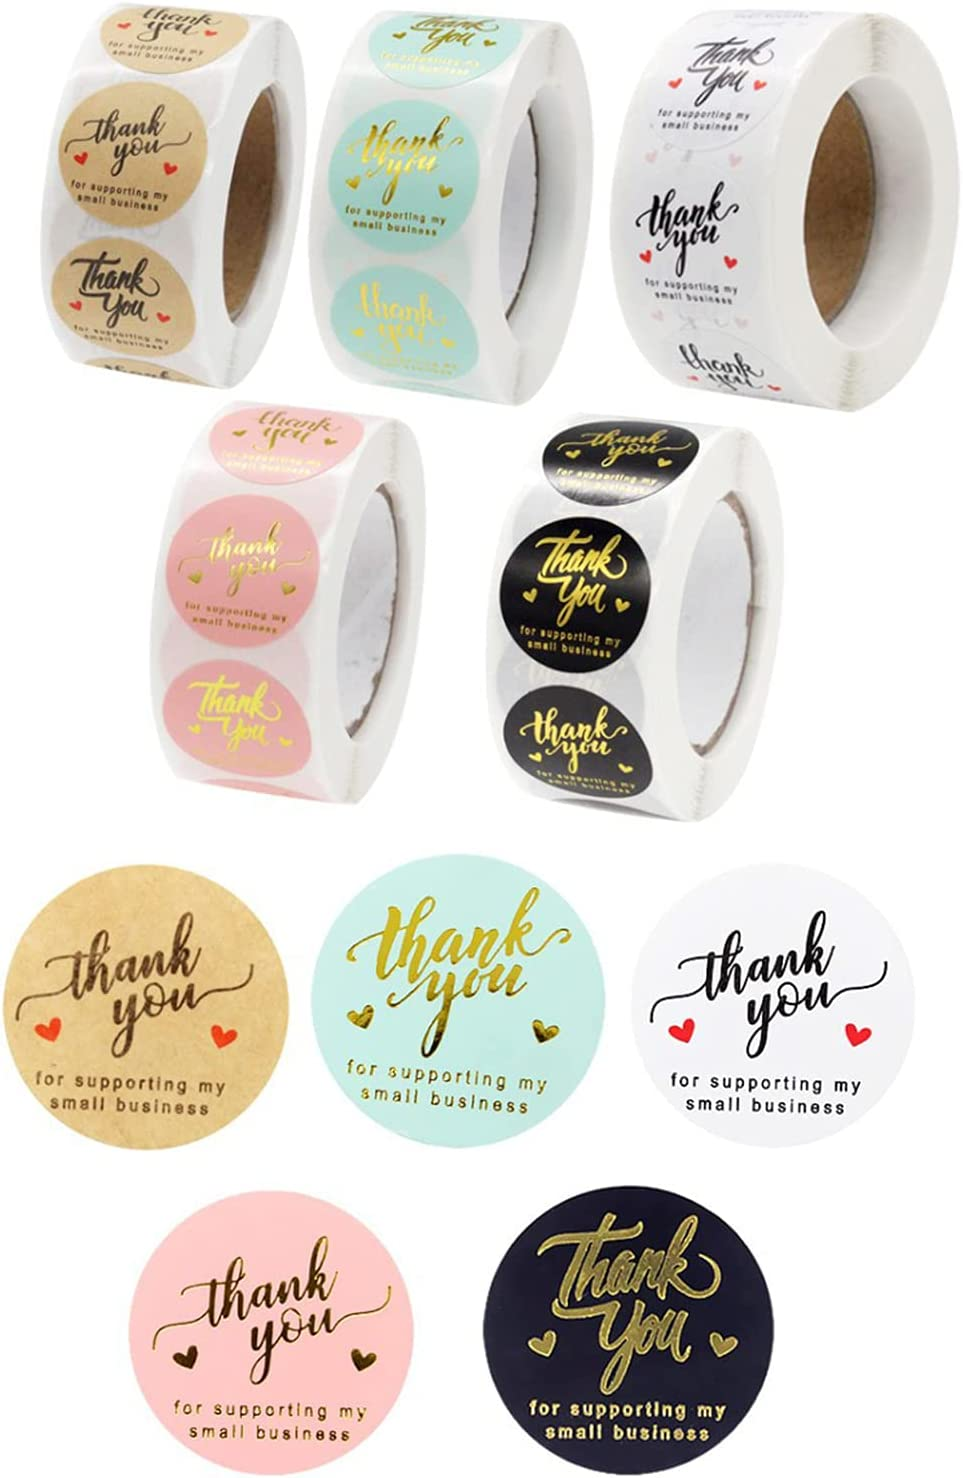 5 Rolls 2500 Pieces Thank You Label Stickers,Thank You for Supporting My Small Business Stickers Roll for Sealing Decorating Envelope,Packaging Boxes,Greeting Cards,Gift Wraps,Bubble Mailers